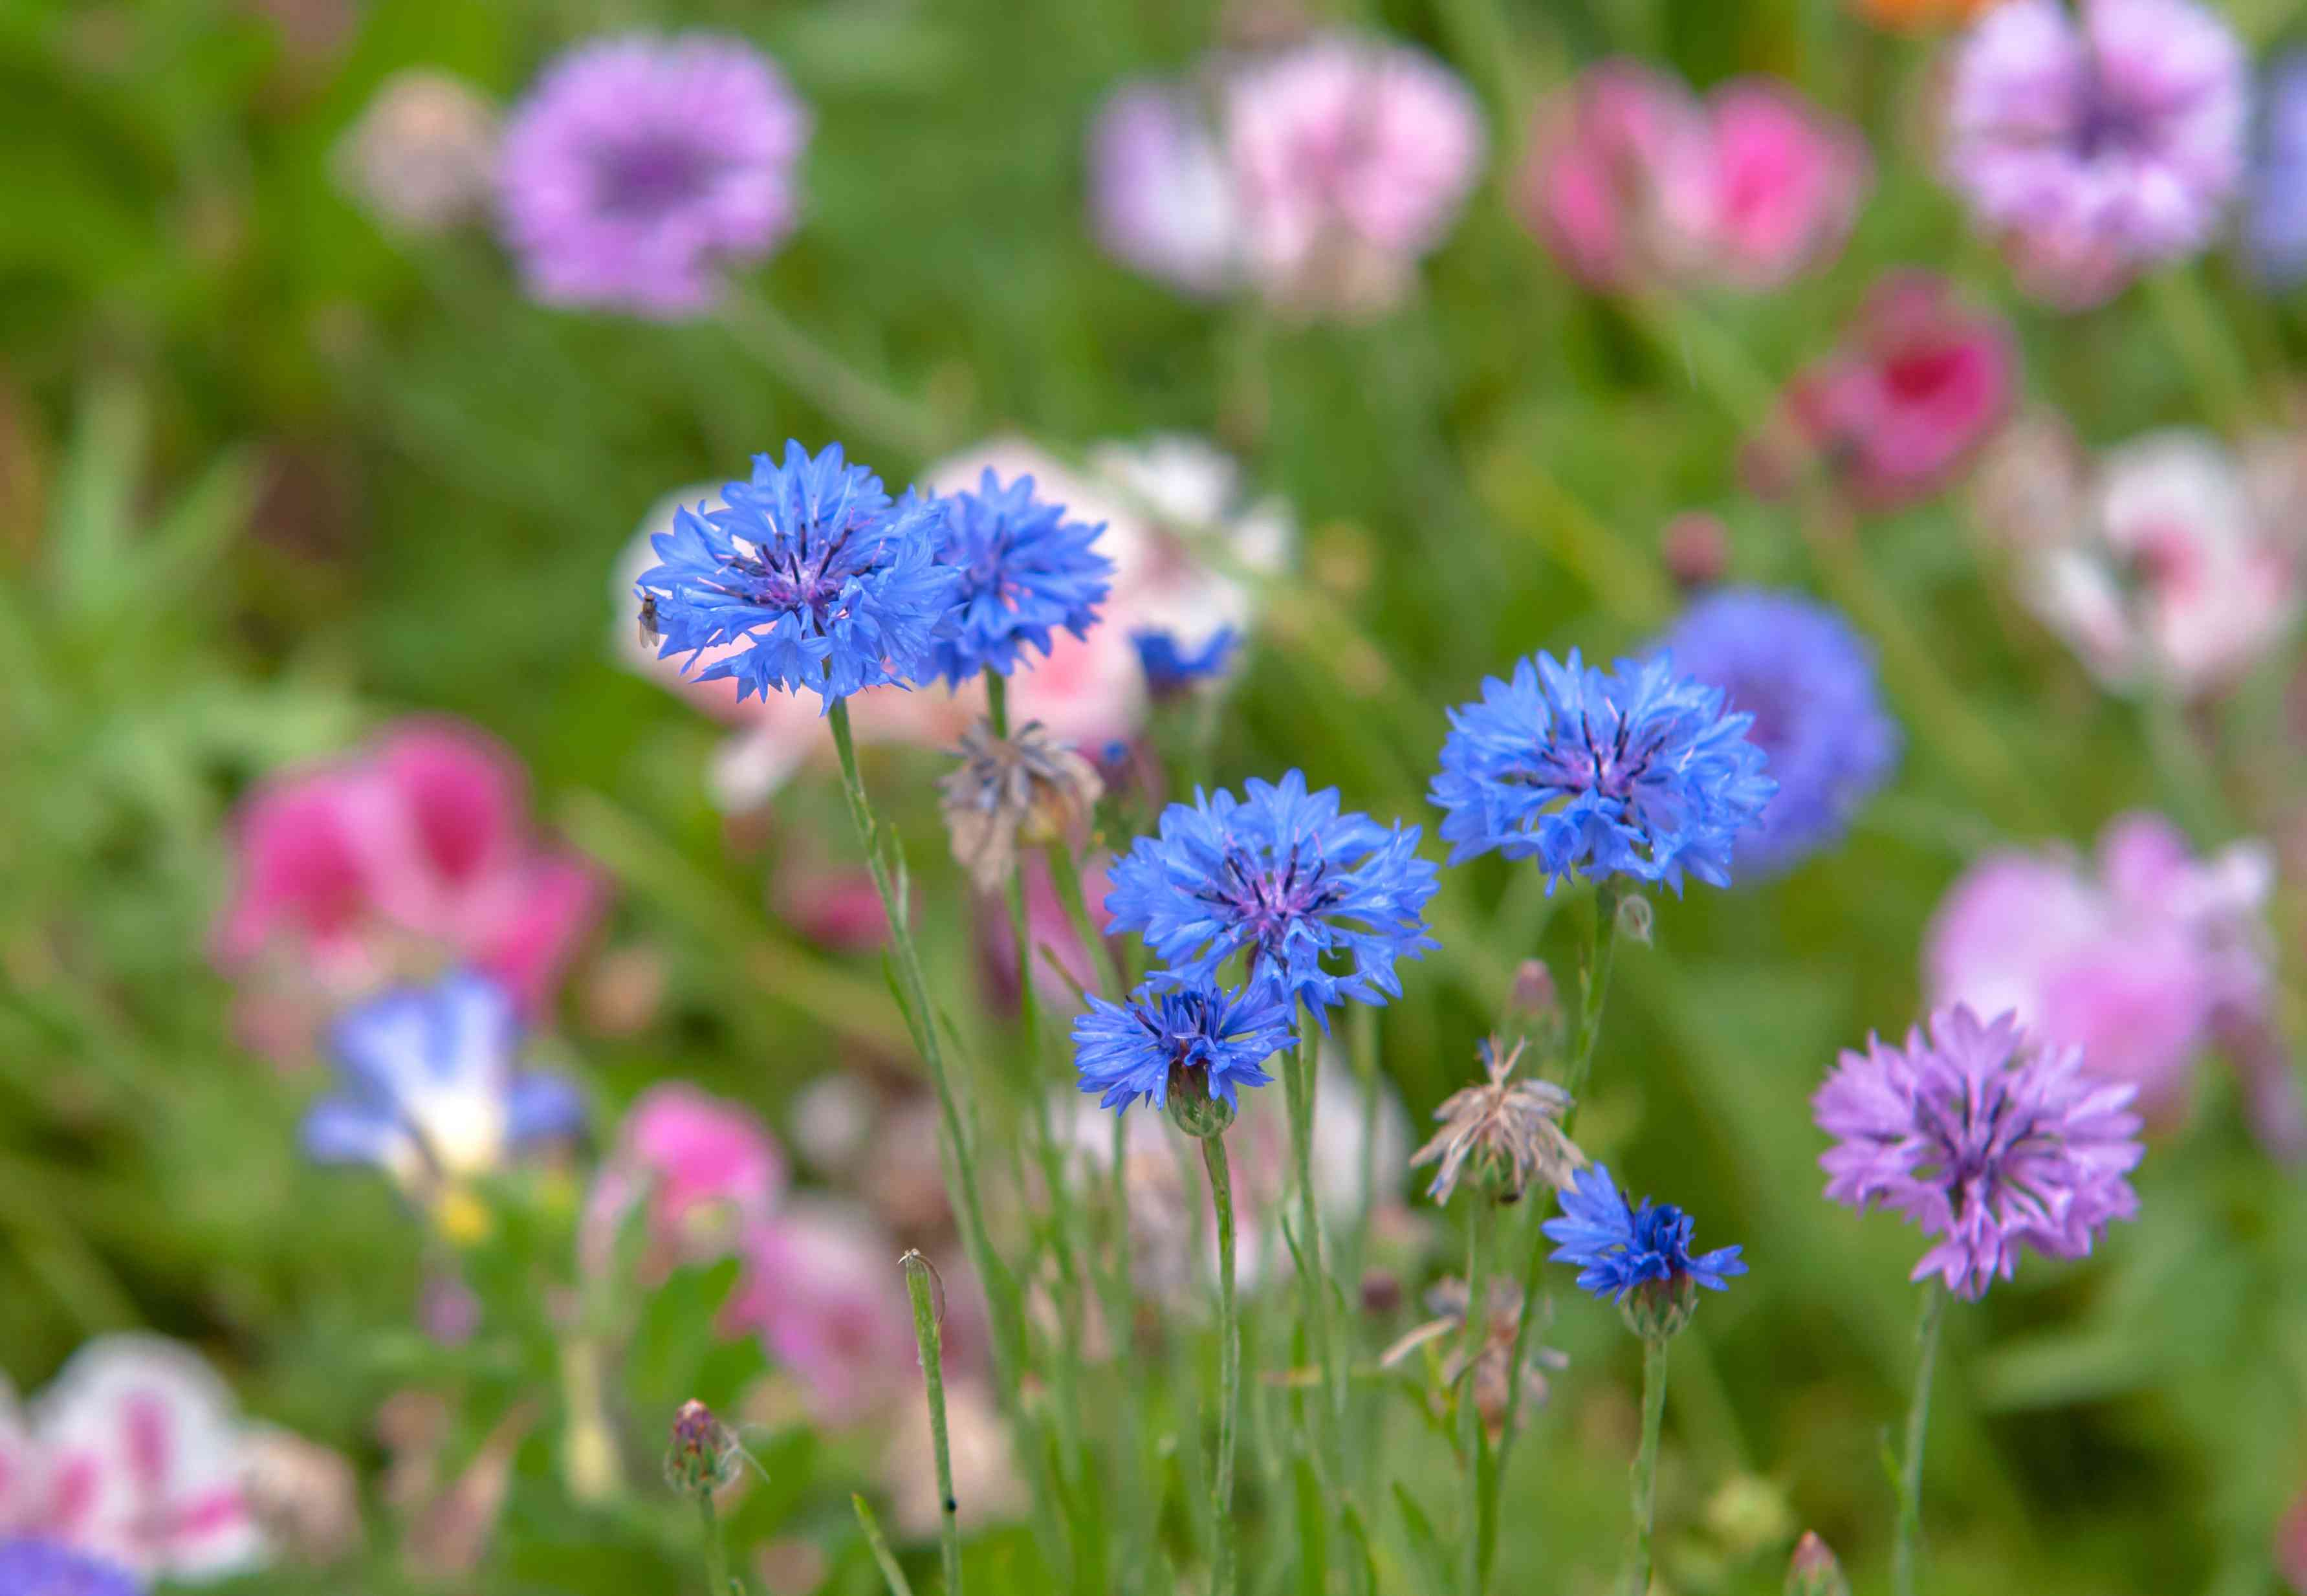 Blue cornflowers in a garden with other pink and purple flowers